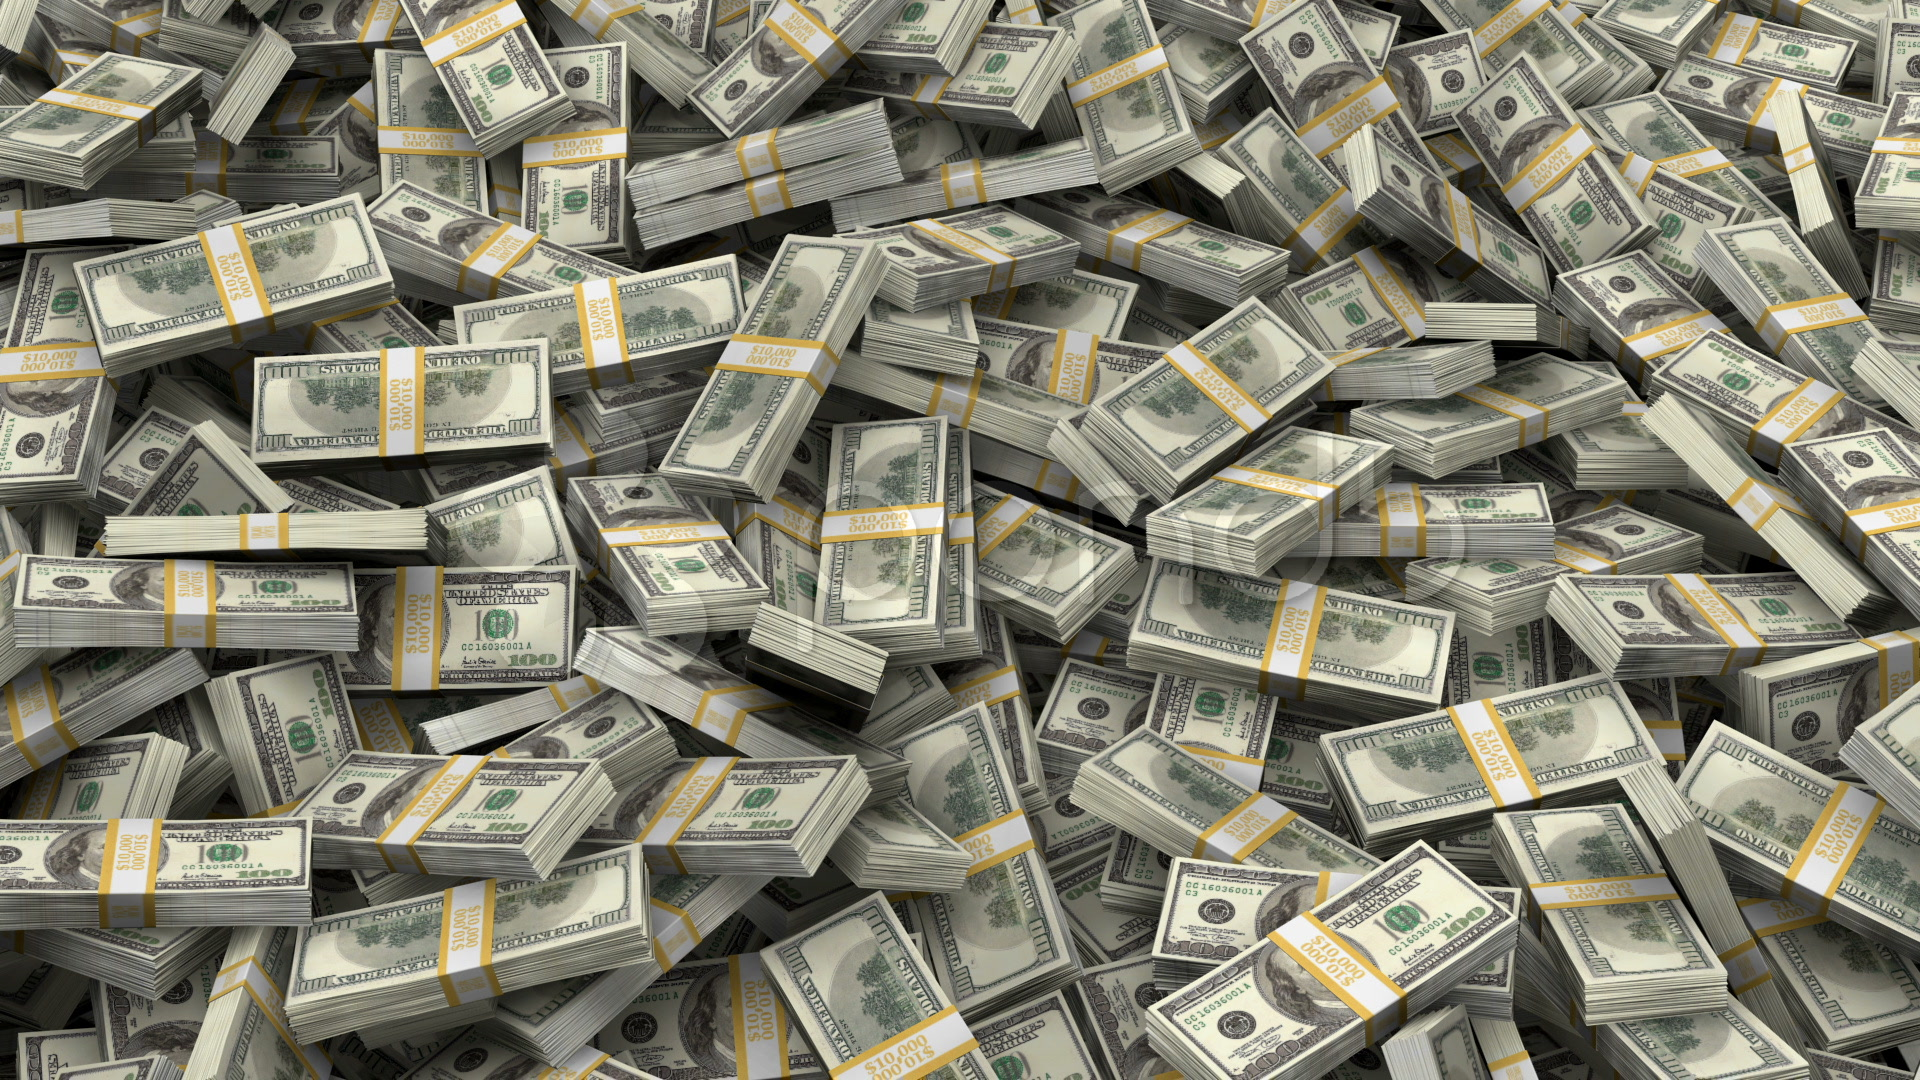 100 Dollar Bill Wallpaper Stock Photos and Pictures